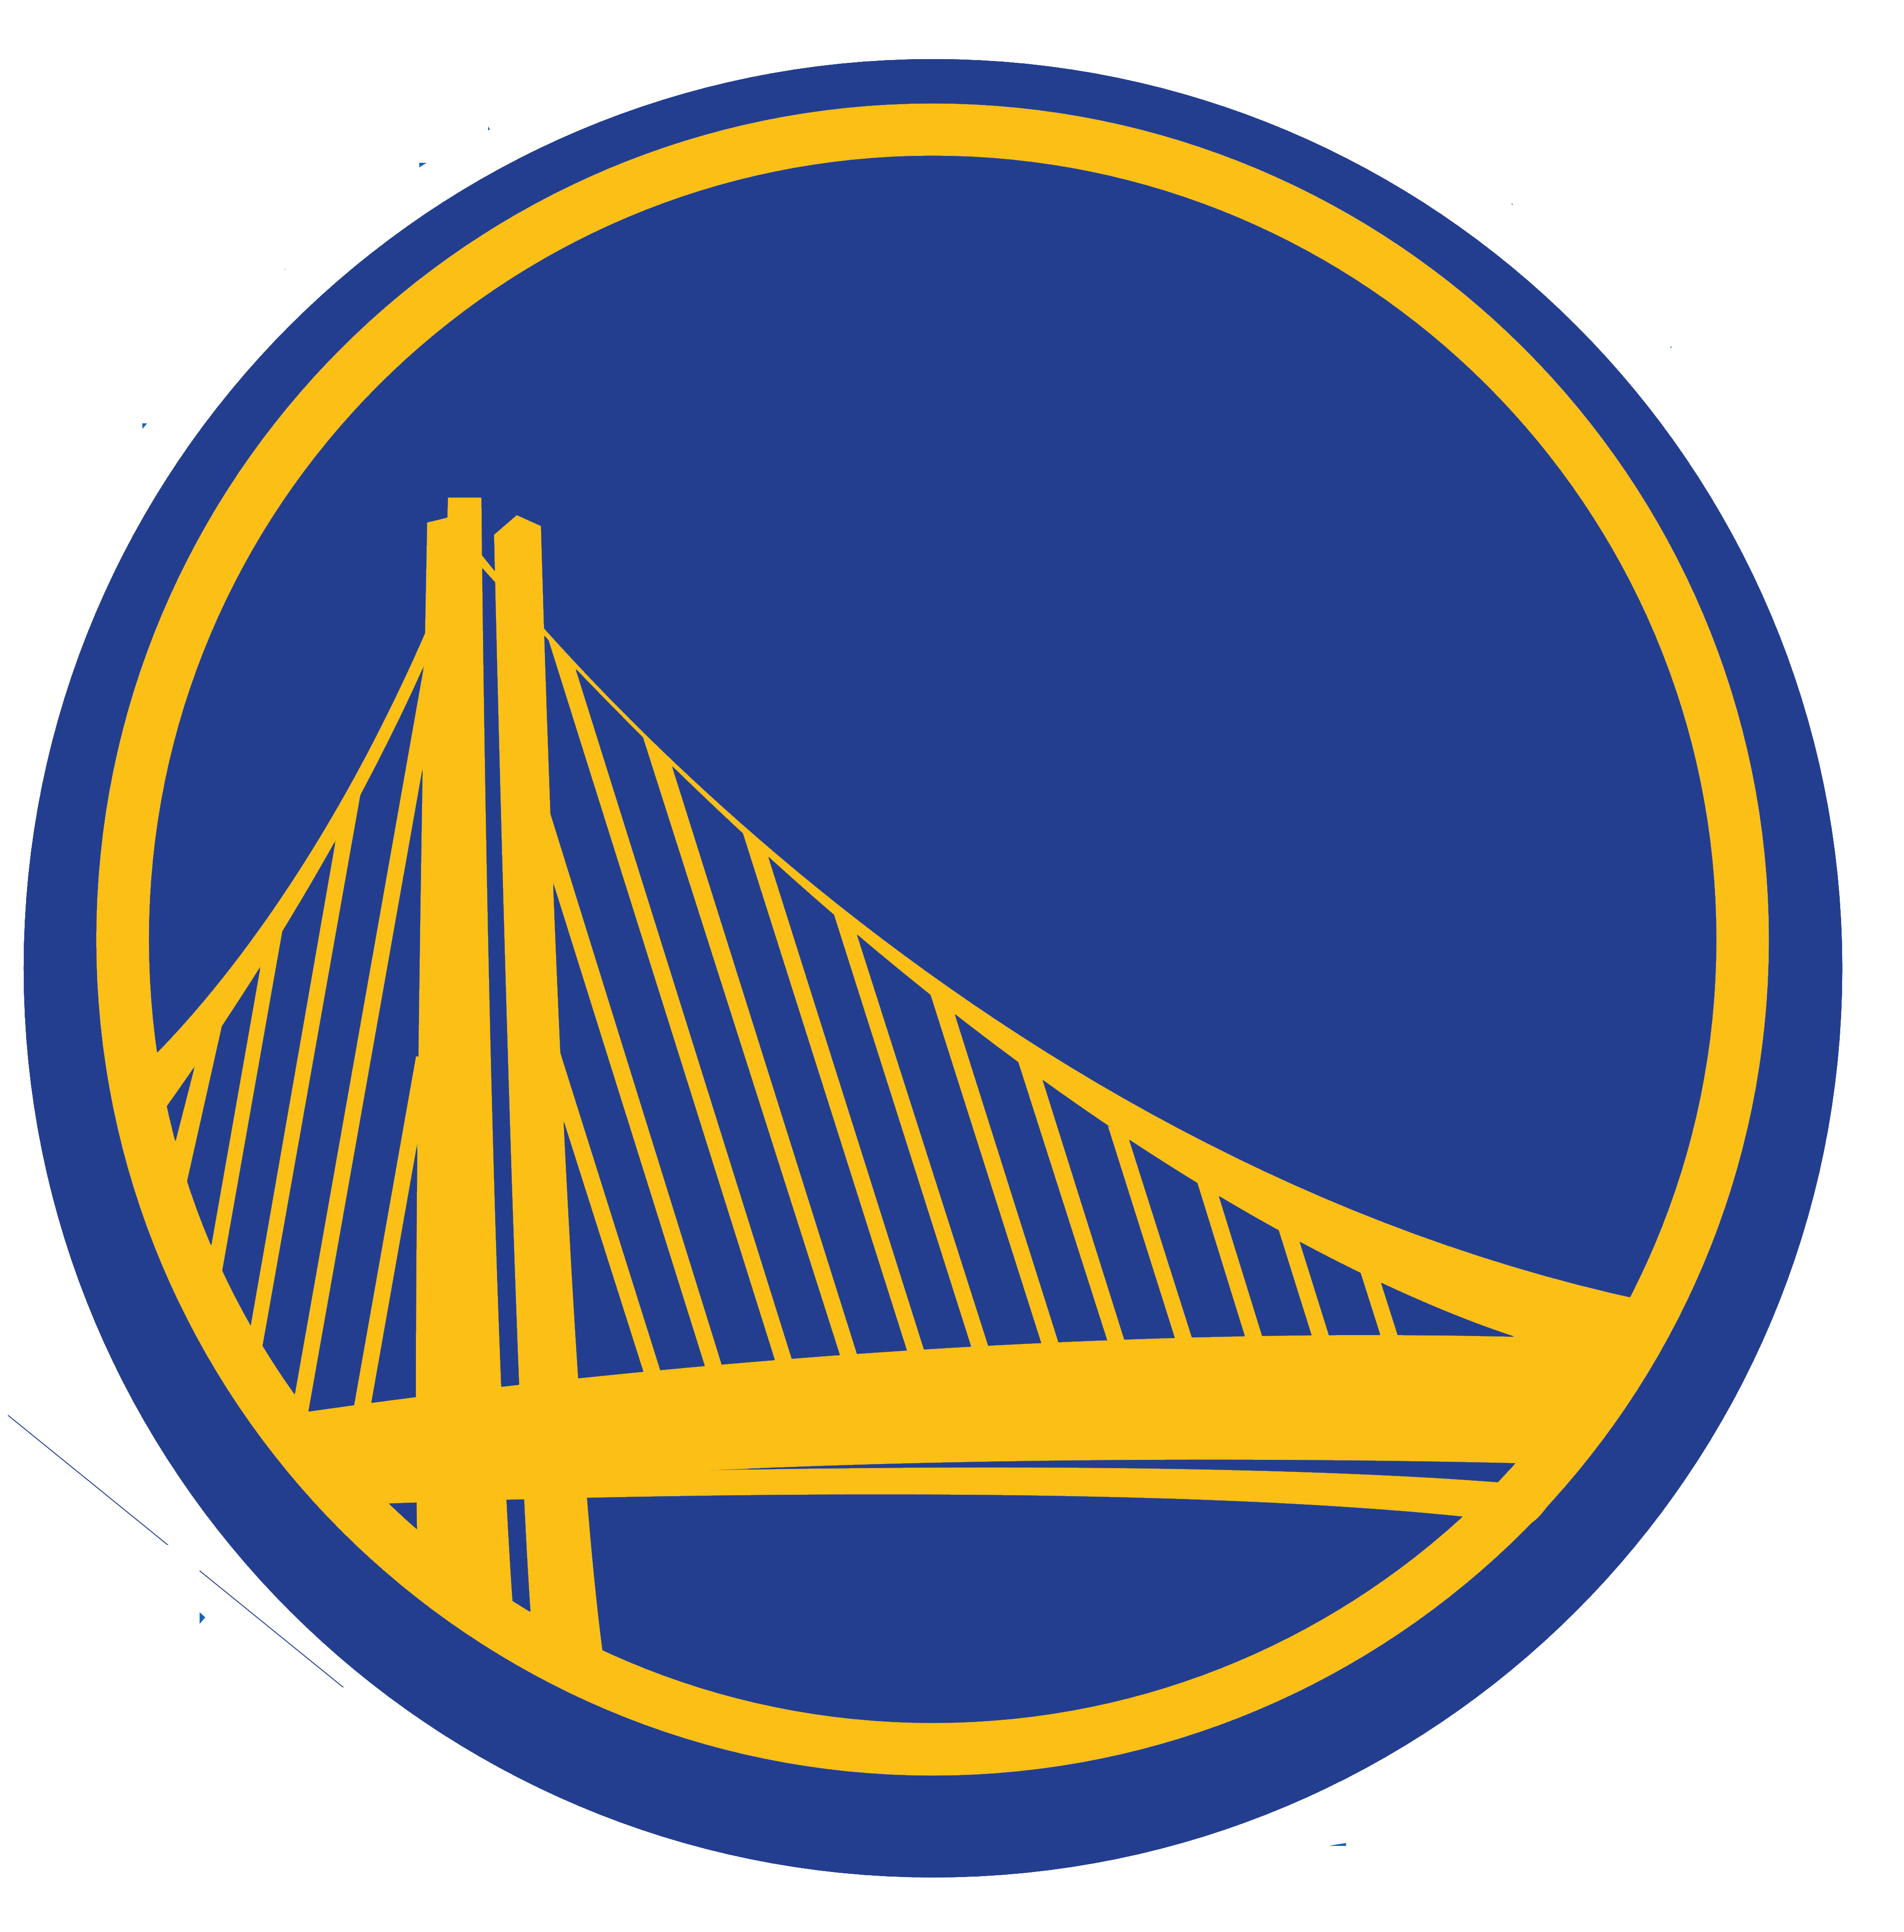 Golden Area Warriors Symbol State Nba Finals PNG Image